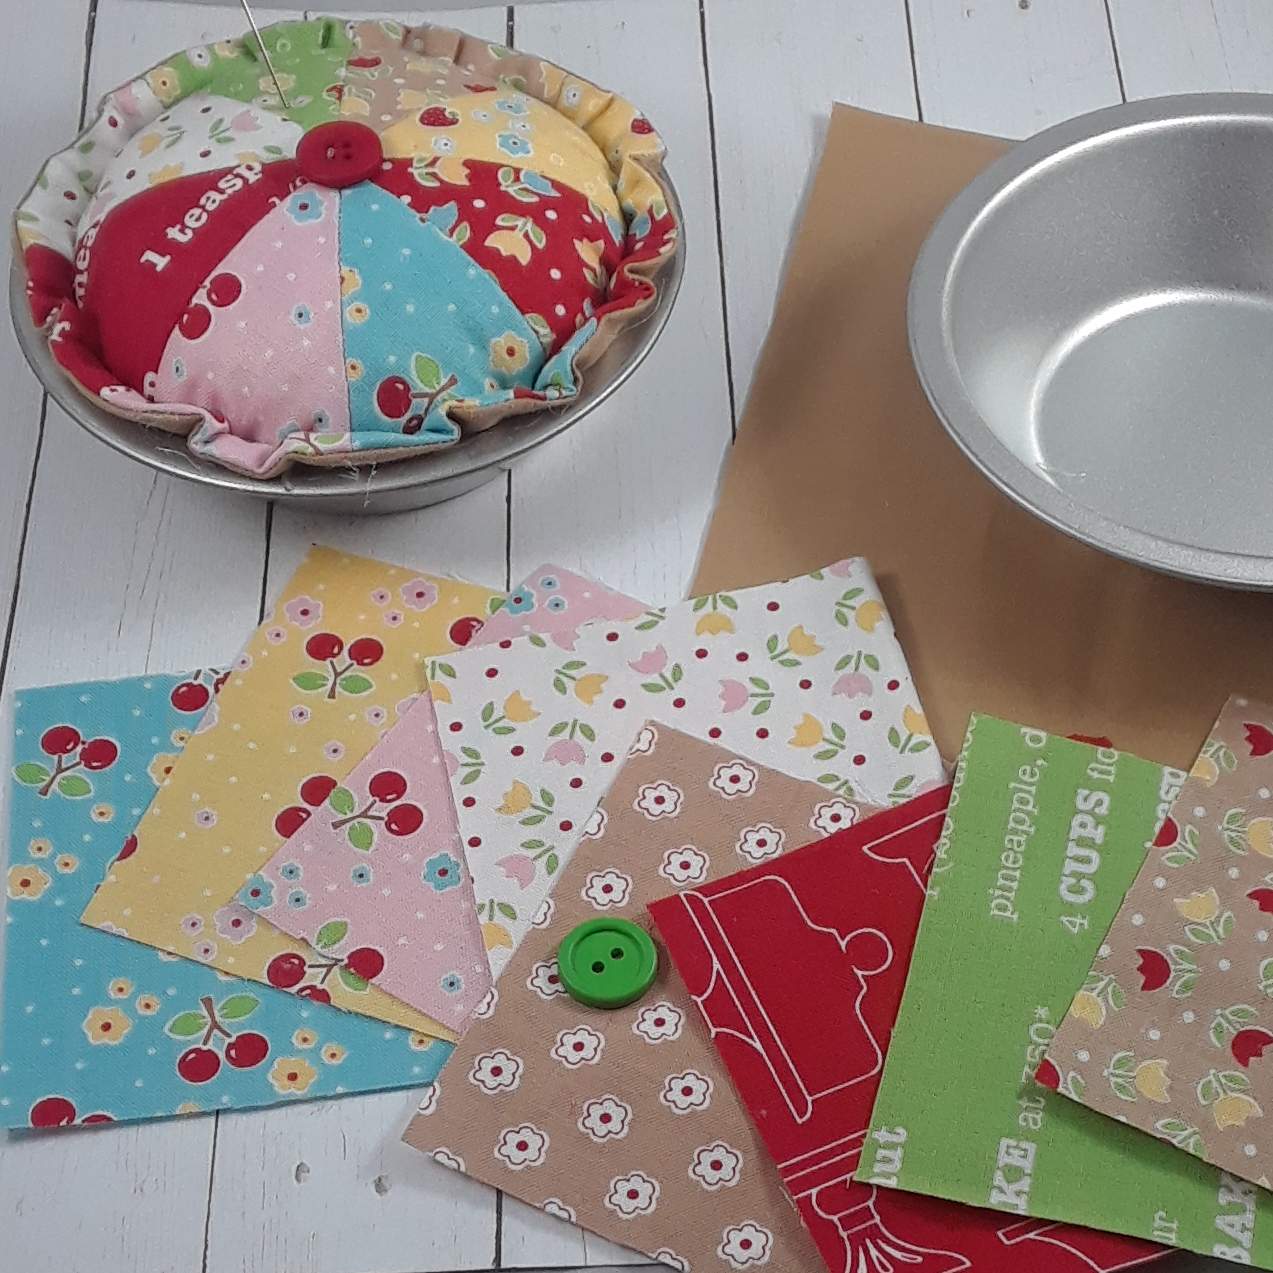 Cutie Pie Pincushion Kit